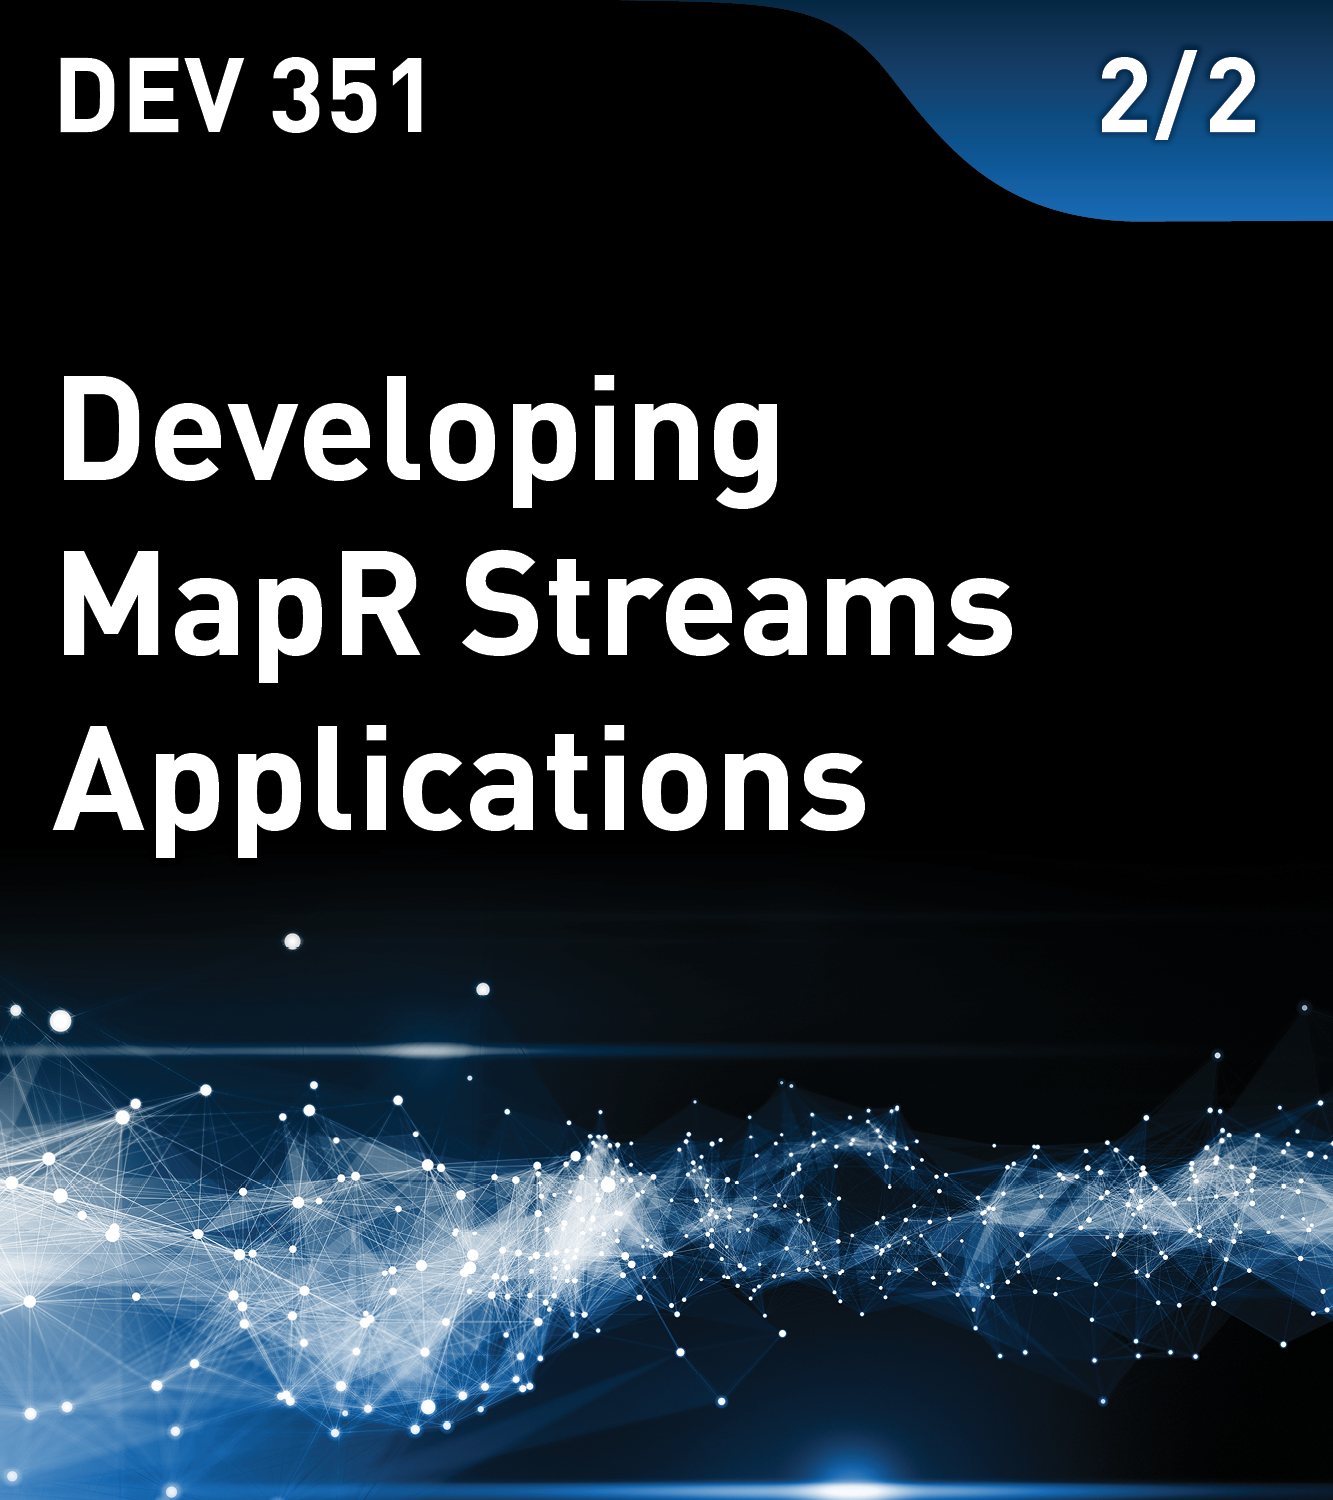 Developing MapR Streams Applications